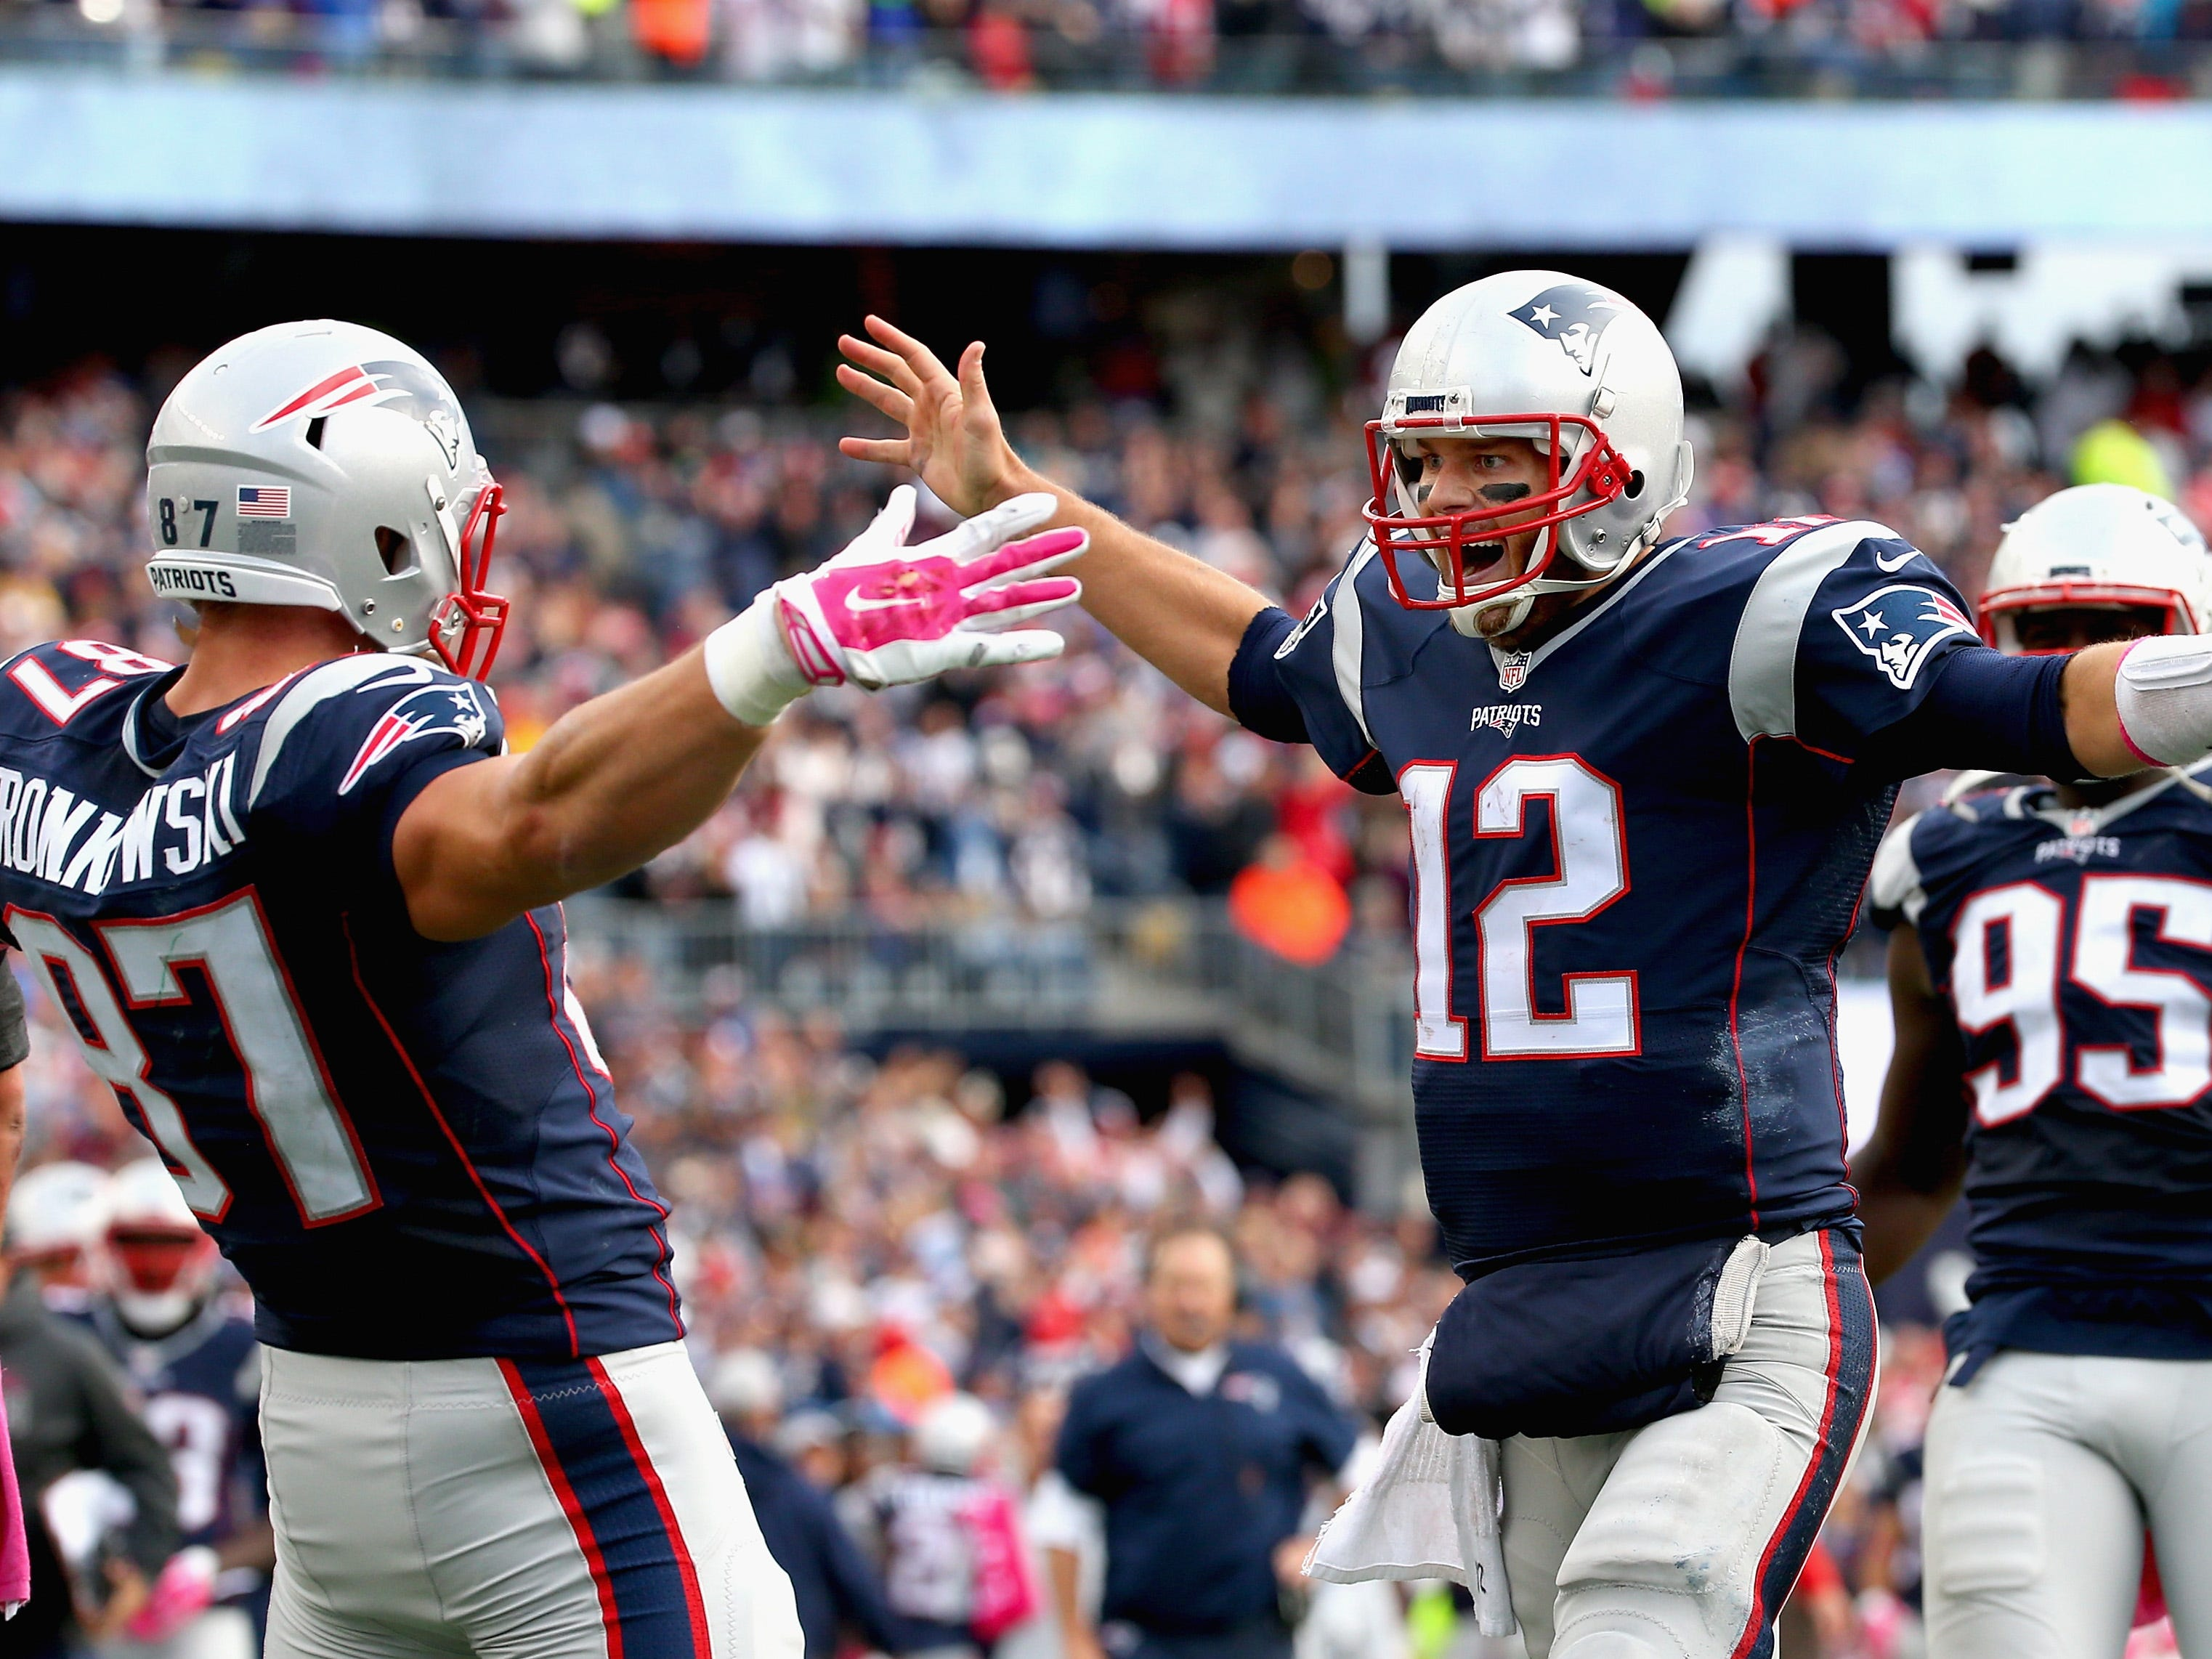 Oct. 25, 2015: Tom Brady and Rob Gronkowski react after Gronkowski scored a touchdown during the fourth quarter against the New York Jets at Gillette Stadium.